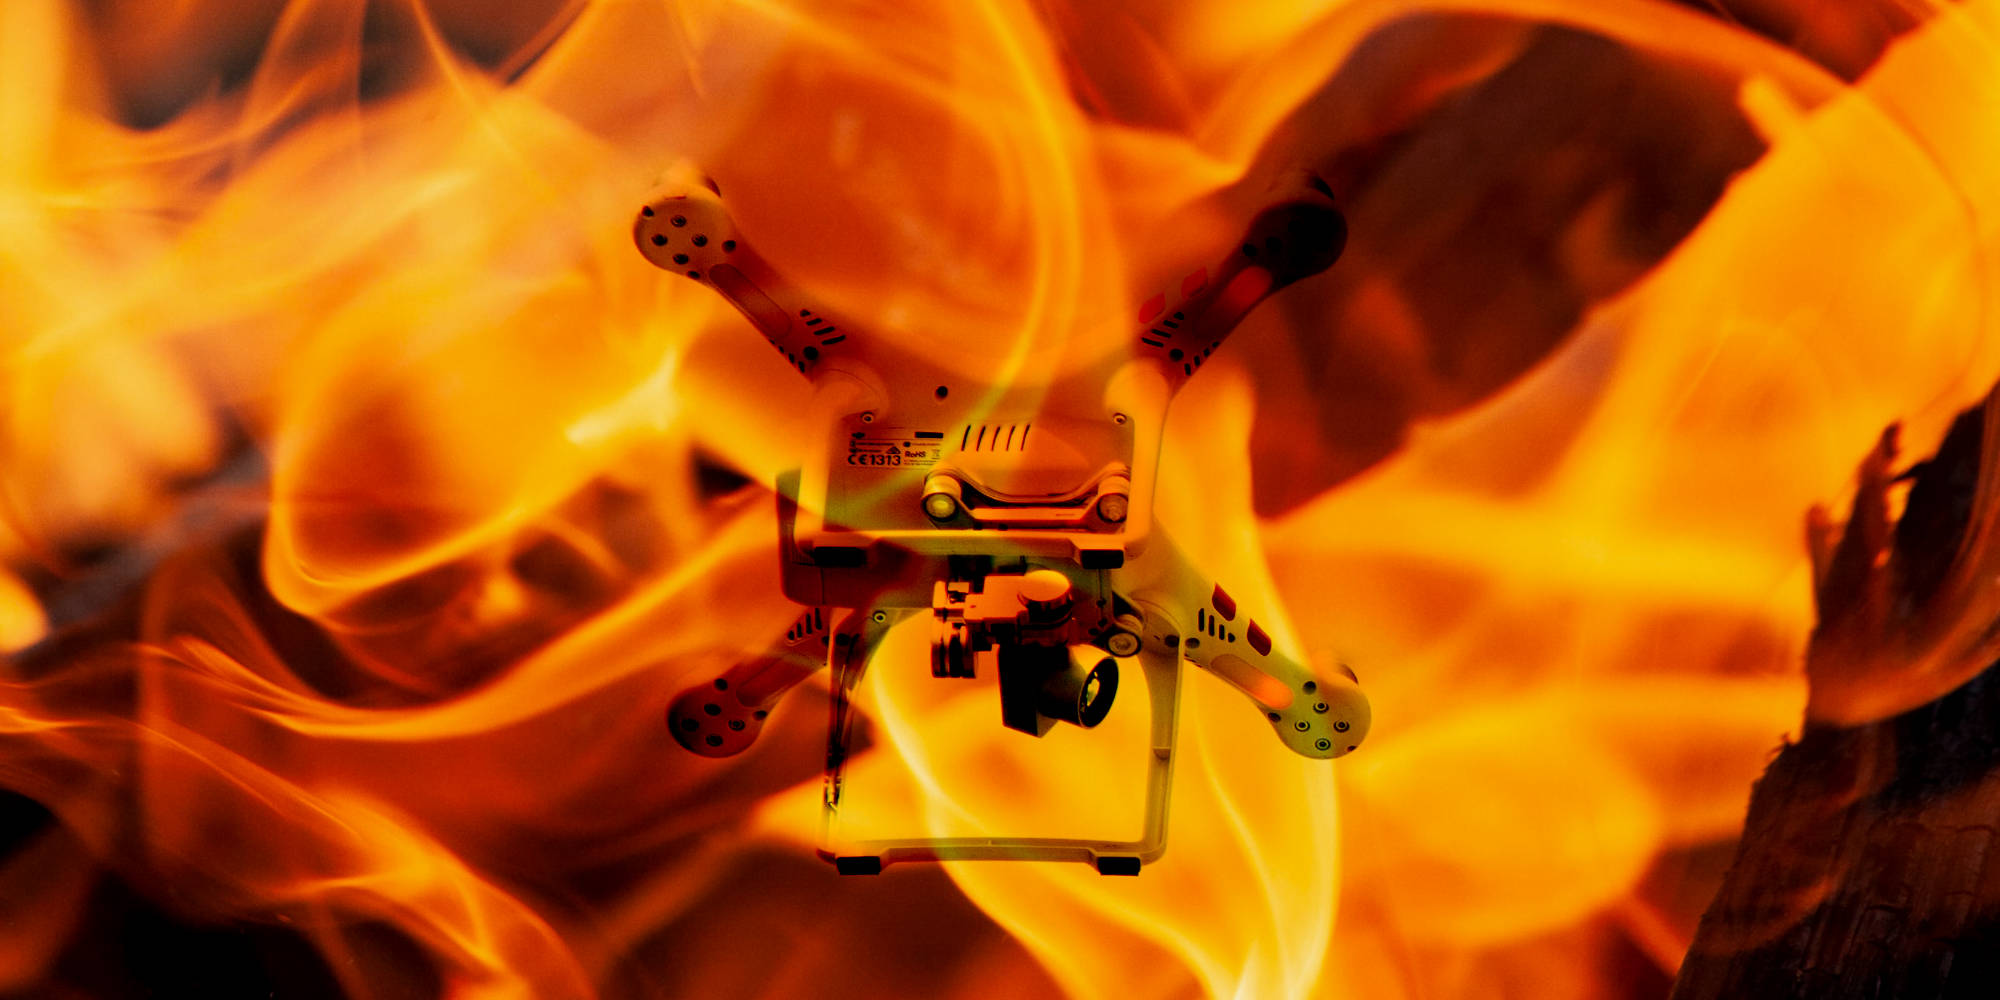 Drone incursions in firefighting airspace are on the decline - DroneDJ